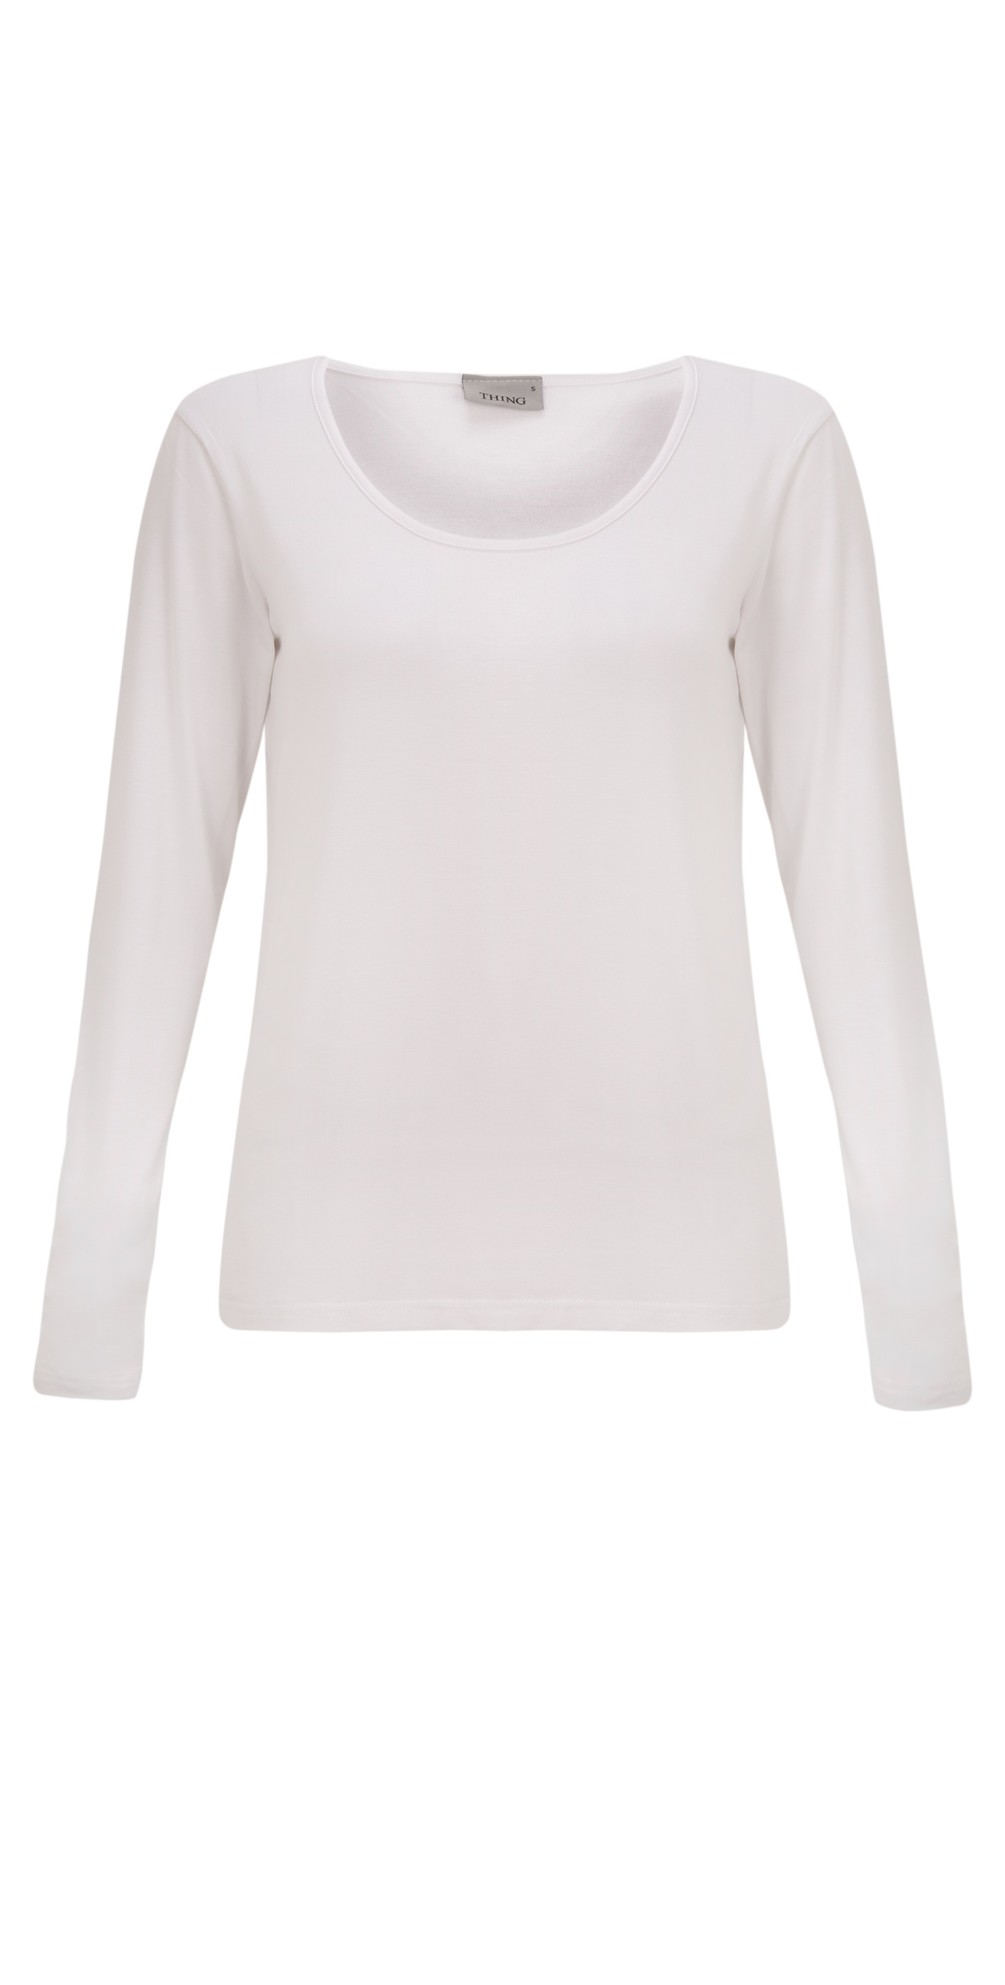 Long Sleeved Round Neck Bamboo Fitted T-Shirt main image